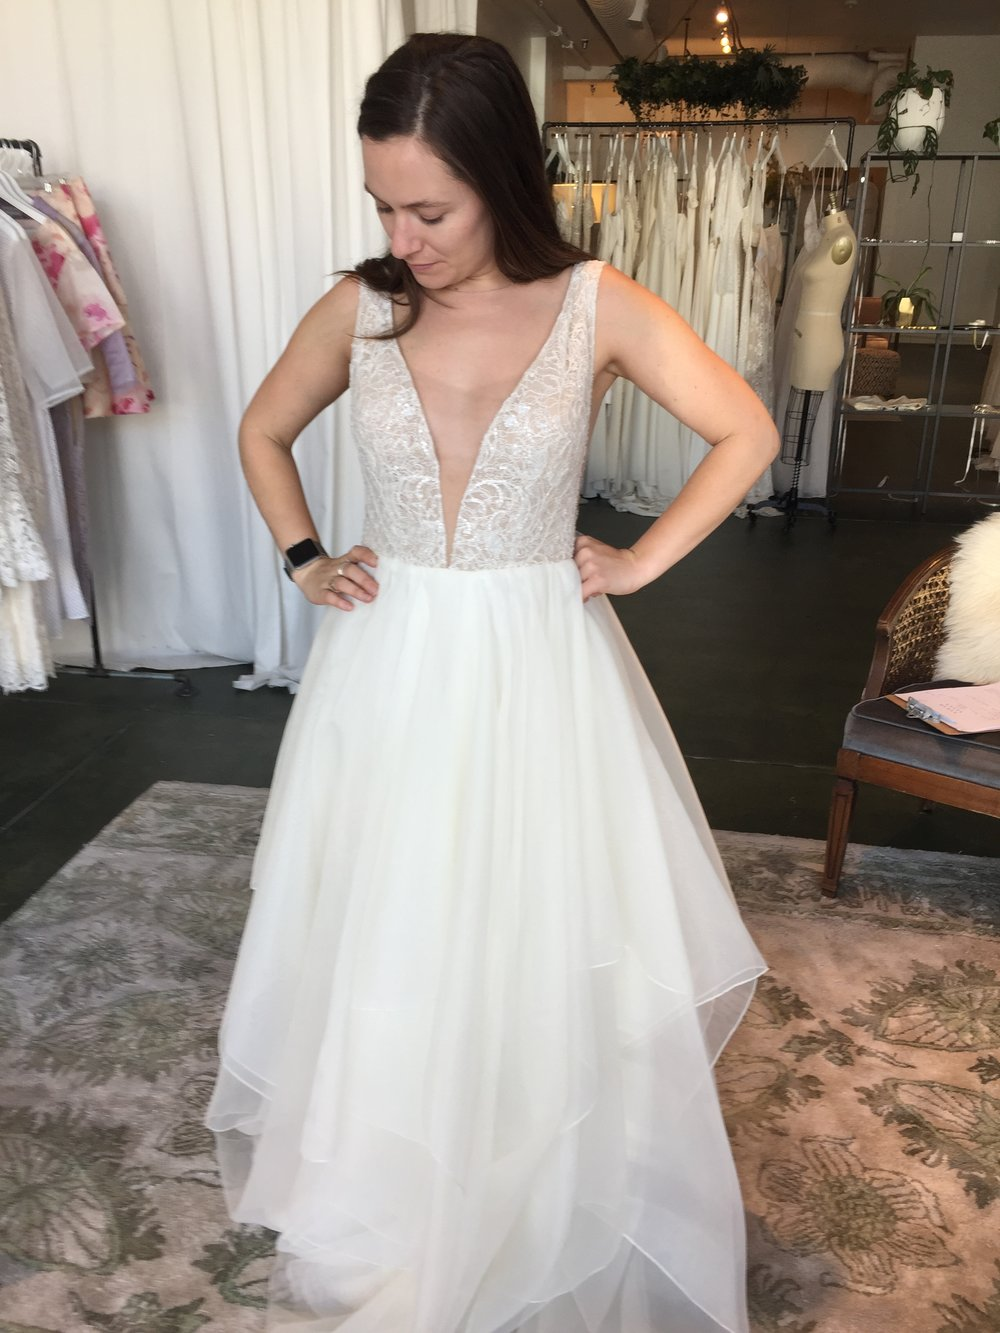 OK Here Is Another Dress That Was Too Expensive But Made Me Feel Like A Princess